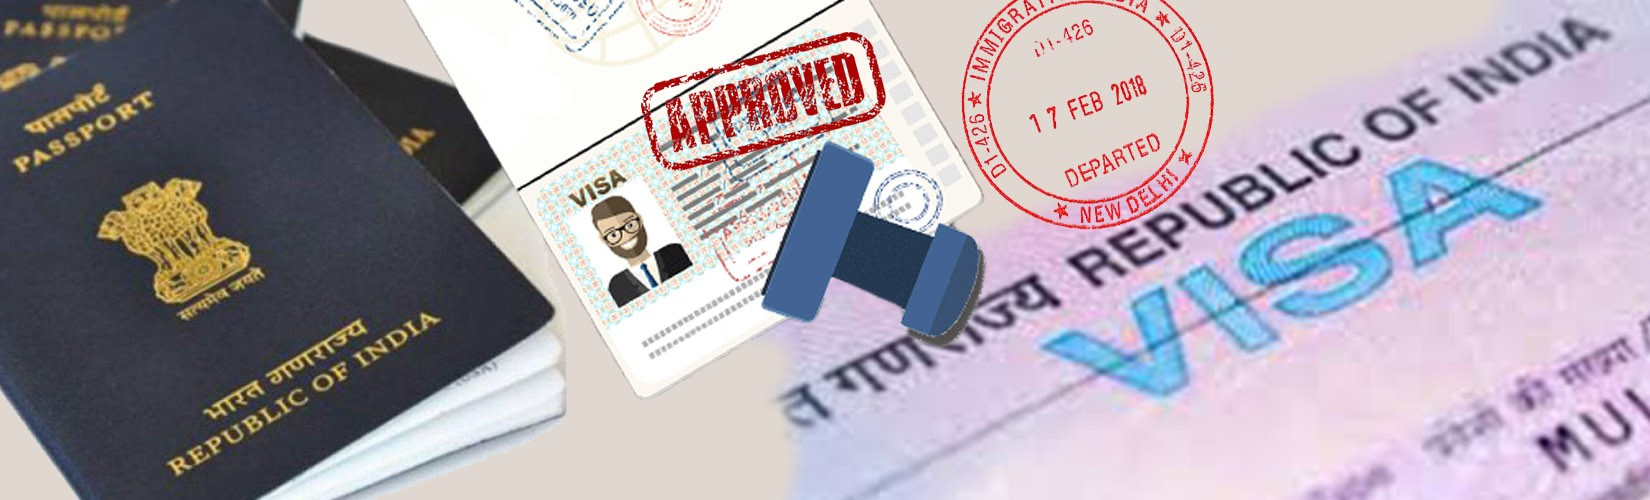 India Travel Information: Complete India Tourist Visa Information